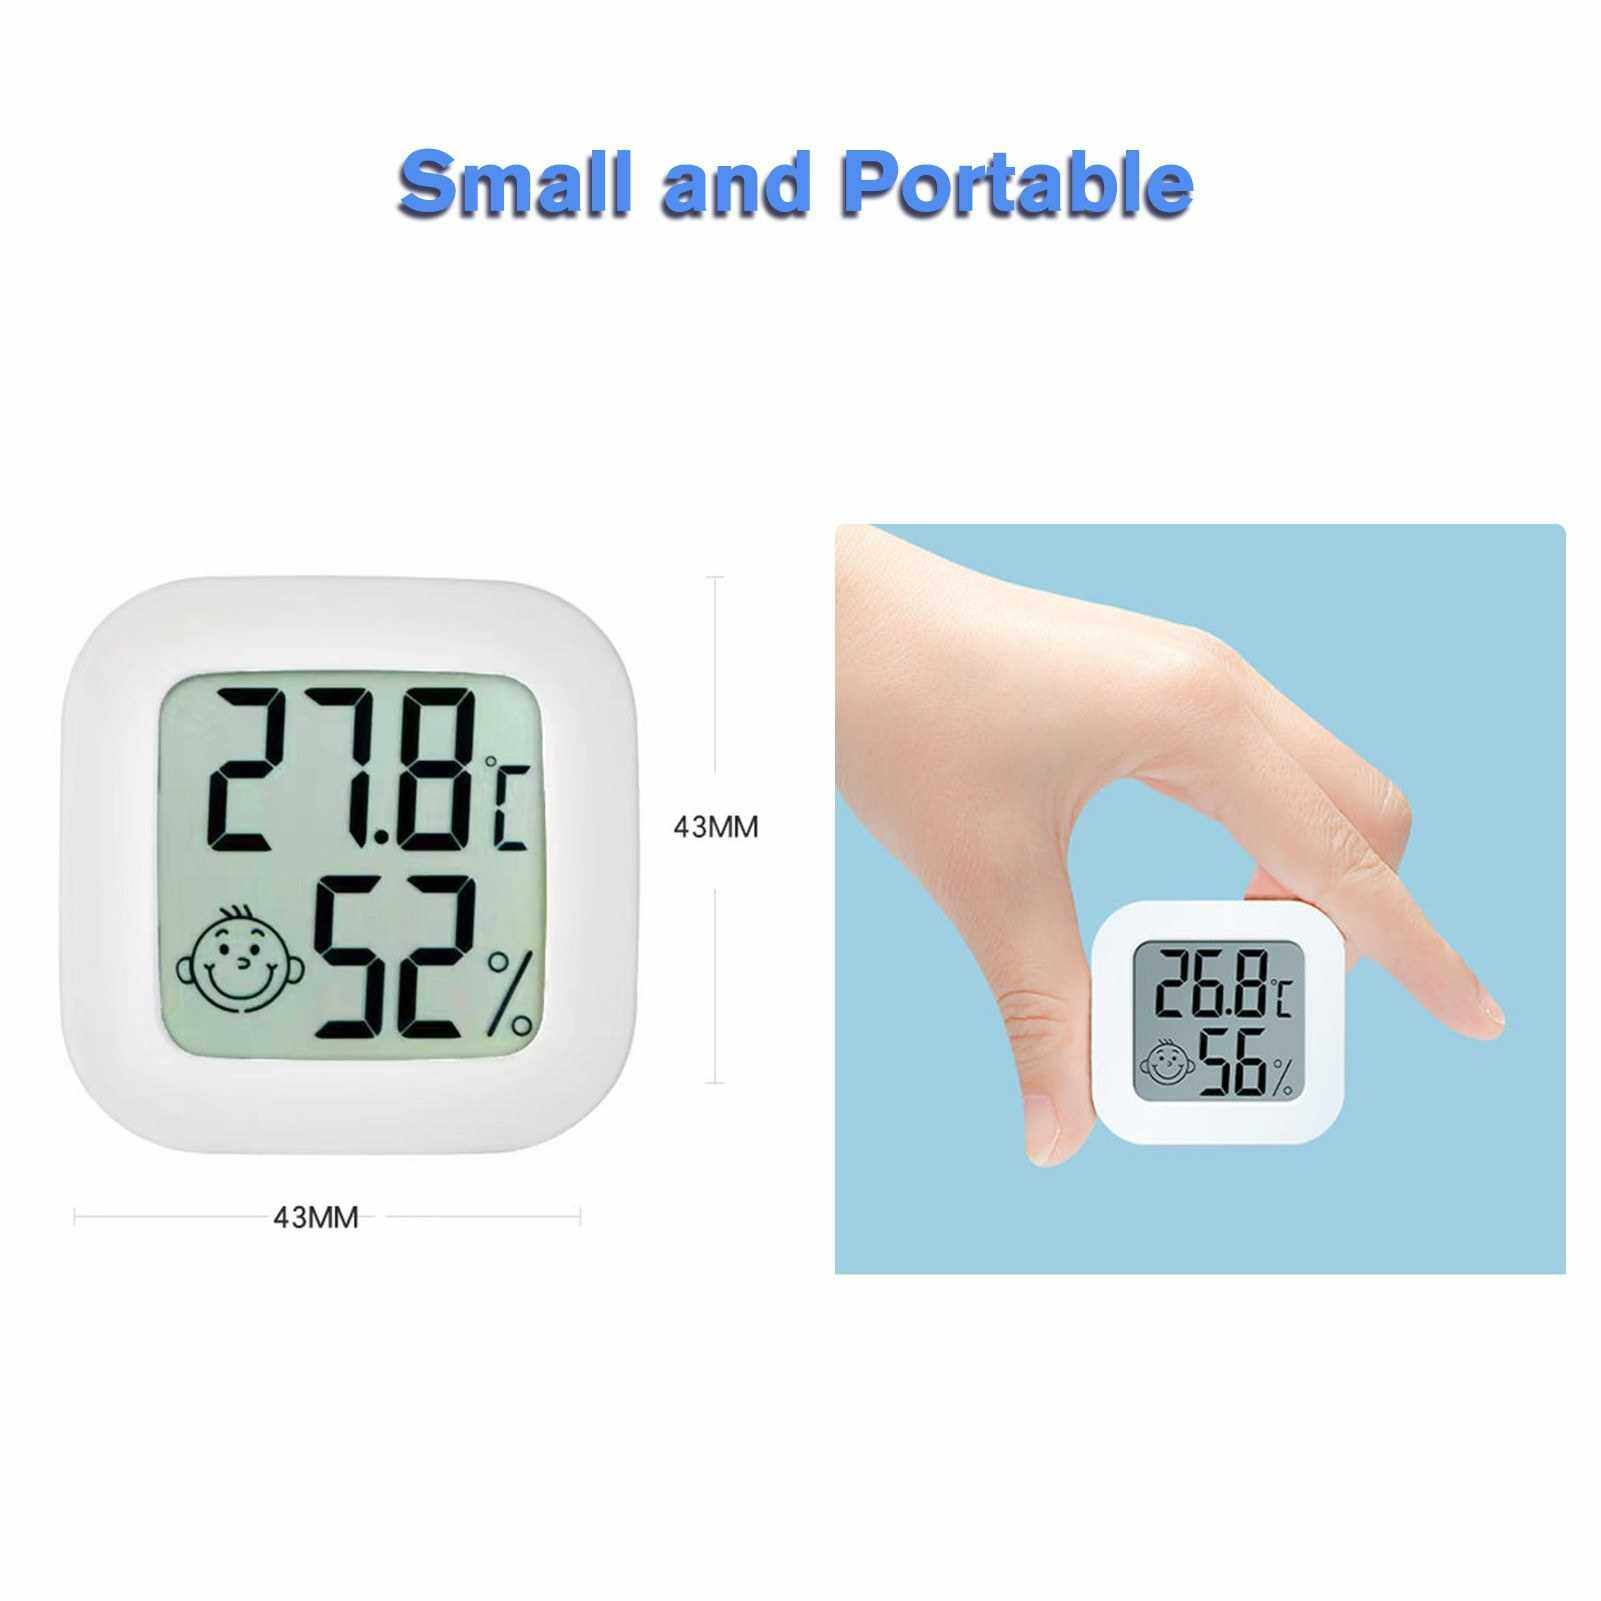 Digital Hygrometer Thermometer Indoor Humidity Meter Mini Room Thermometer with Humidity and Temperature Monitor Accurate Humidity Gauge for Home Greenhouse Office School (Standard)